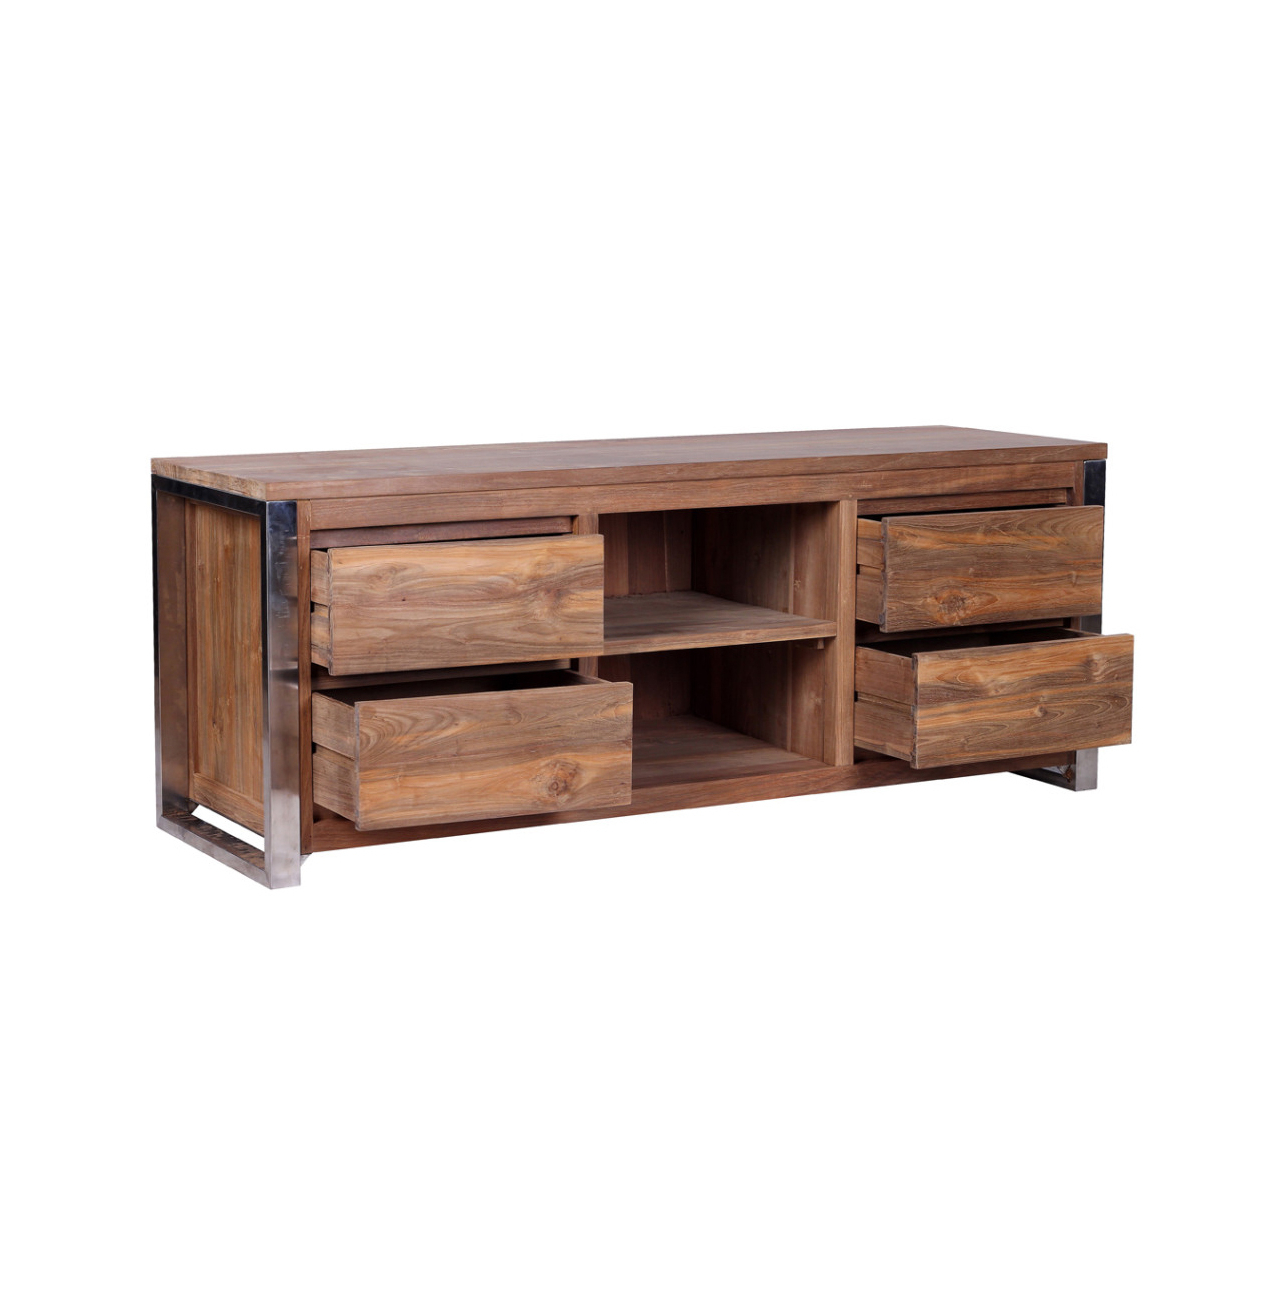 Reclaimed Wood And Metal Tv Stands For Popular Rarem Reclaimed Wood Tv Stand – Reclaimed Teak And Stainless Steel (View 10 of 20)